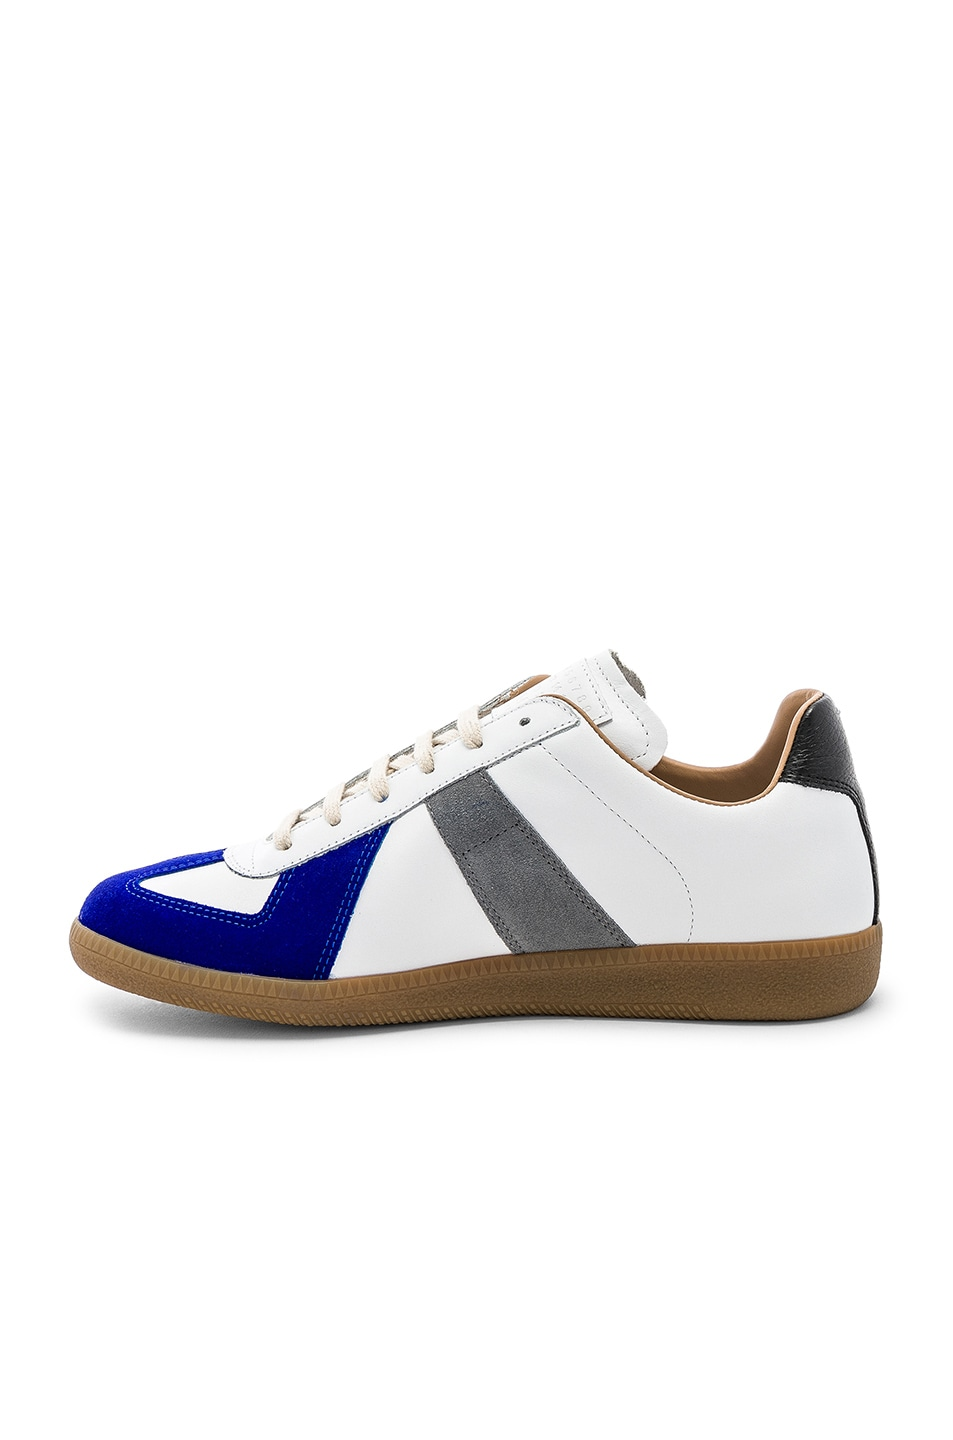 Image 5 of Maison Margiela Leather Replica Low Tops in White & Blue